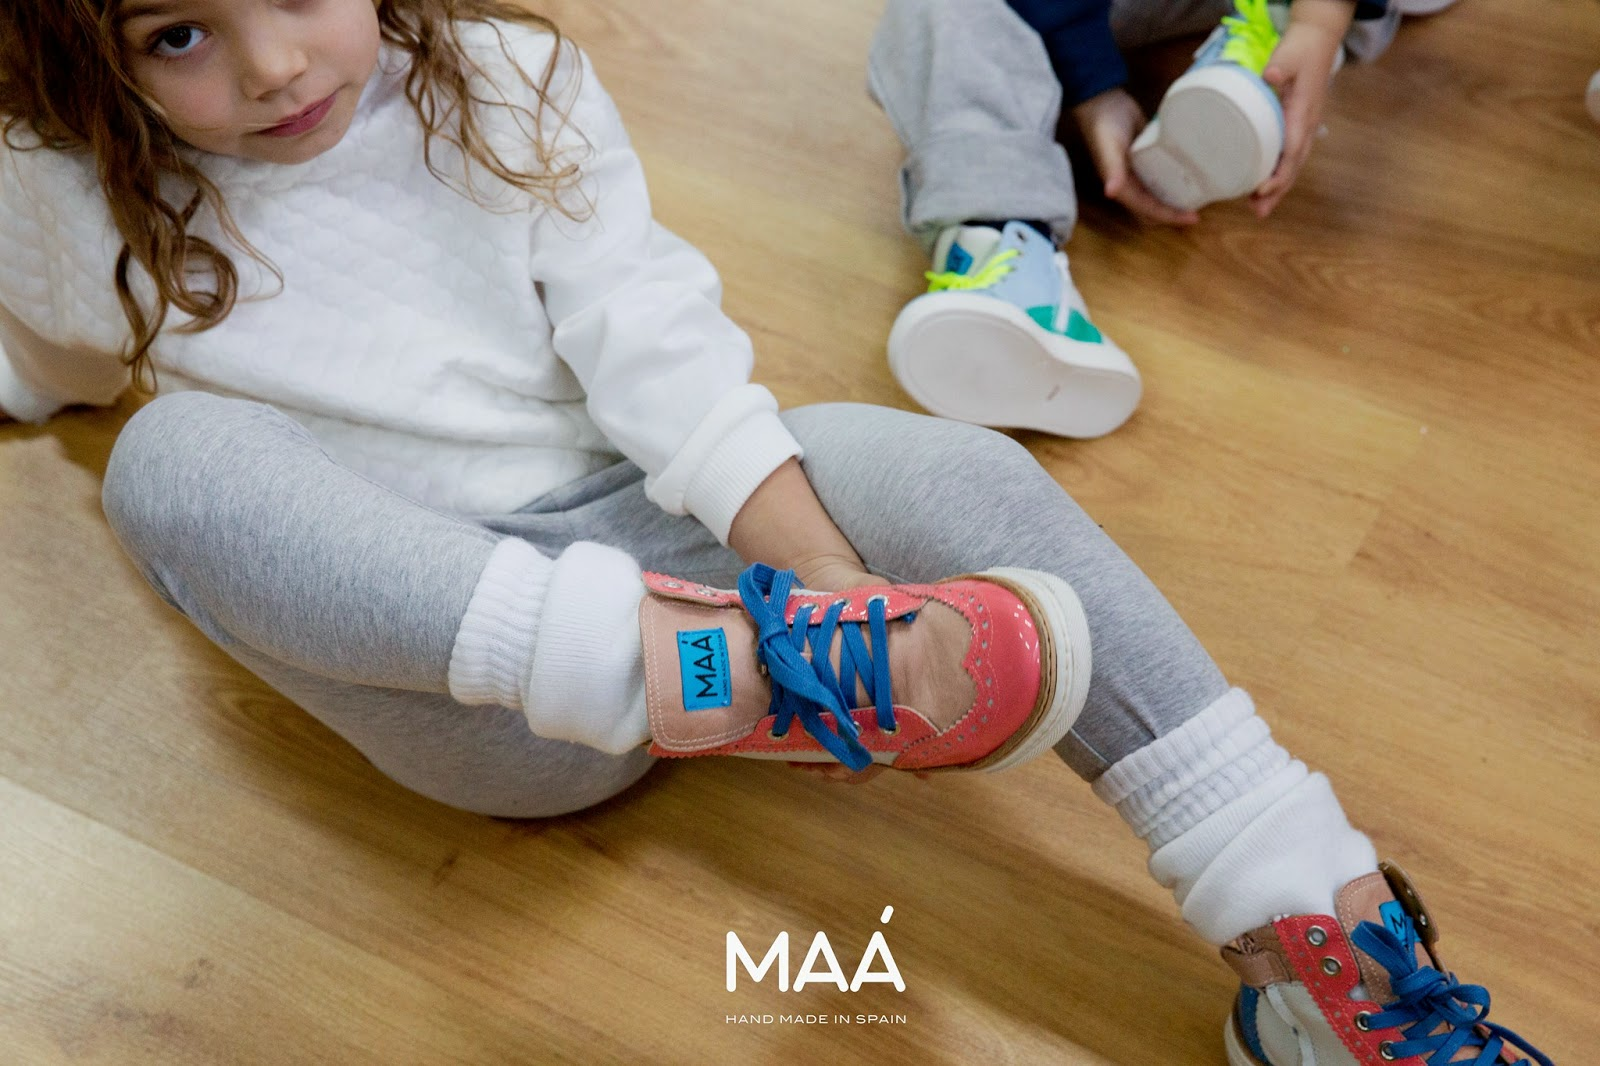 MAÁ SHOES HANDMADE IN SPAIN